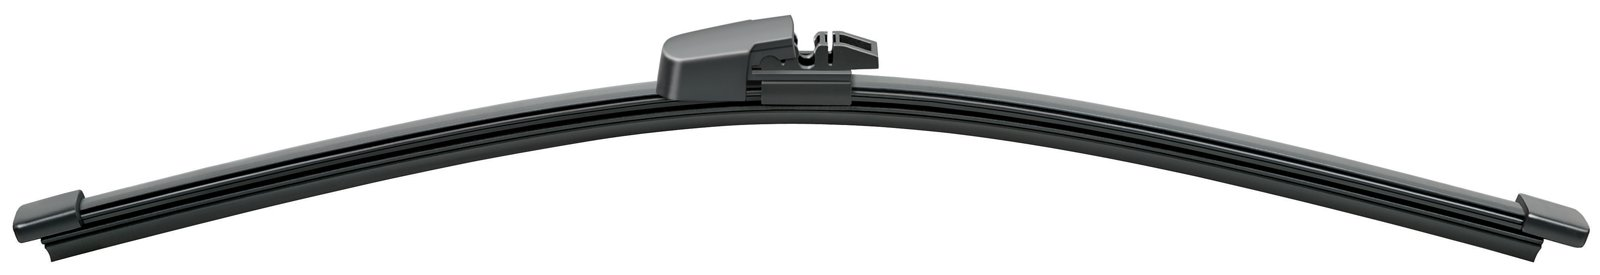 TRICO Exact Fit 11-G Rear Beam Wiper Blade - 11''